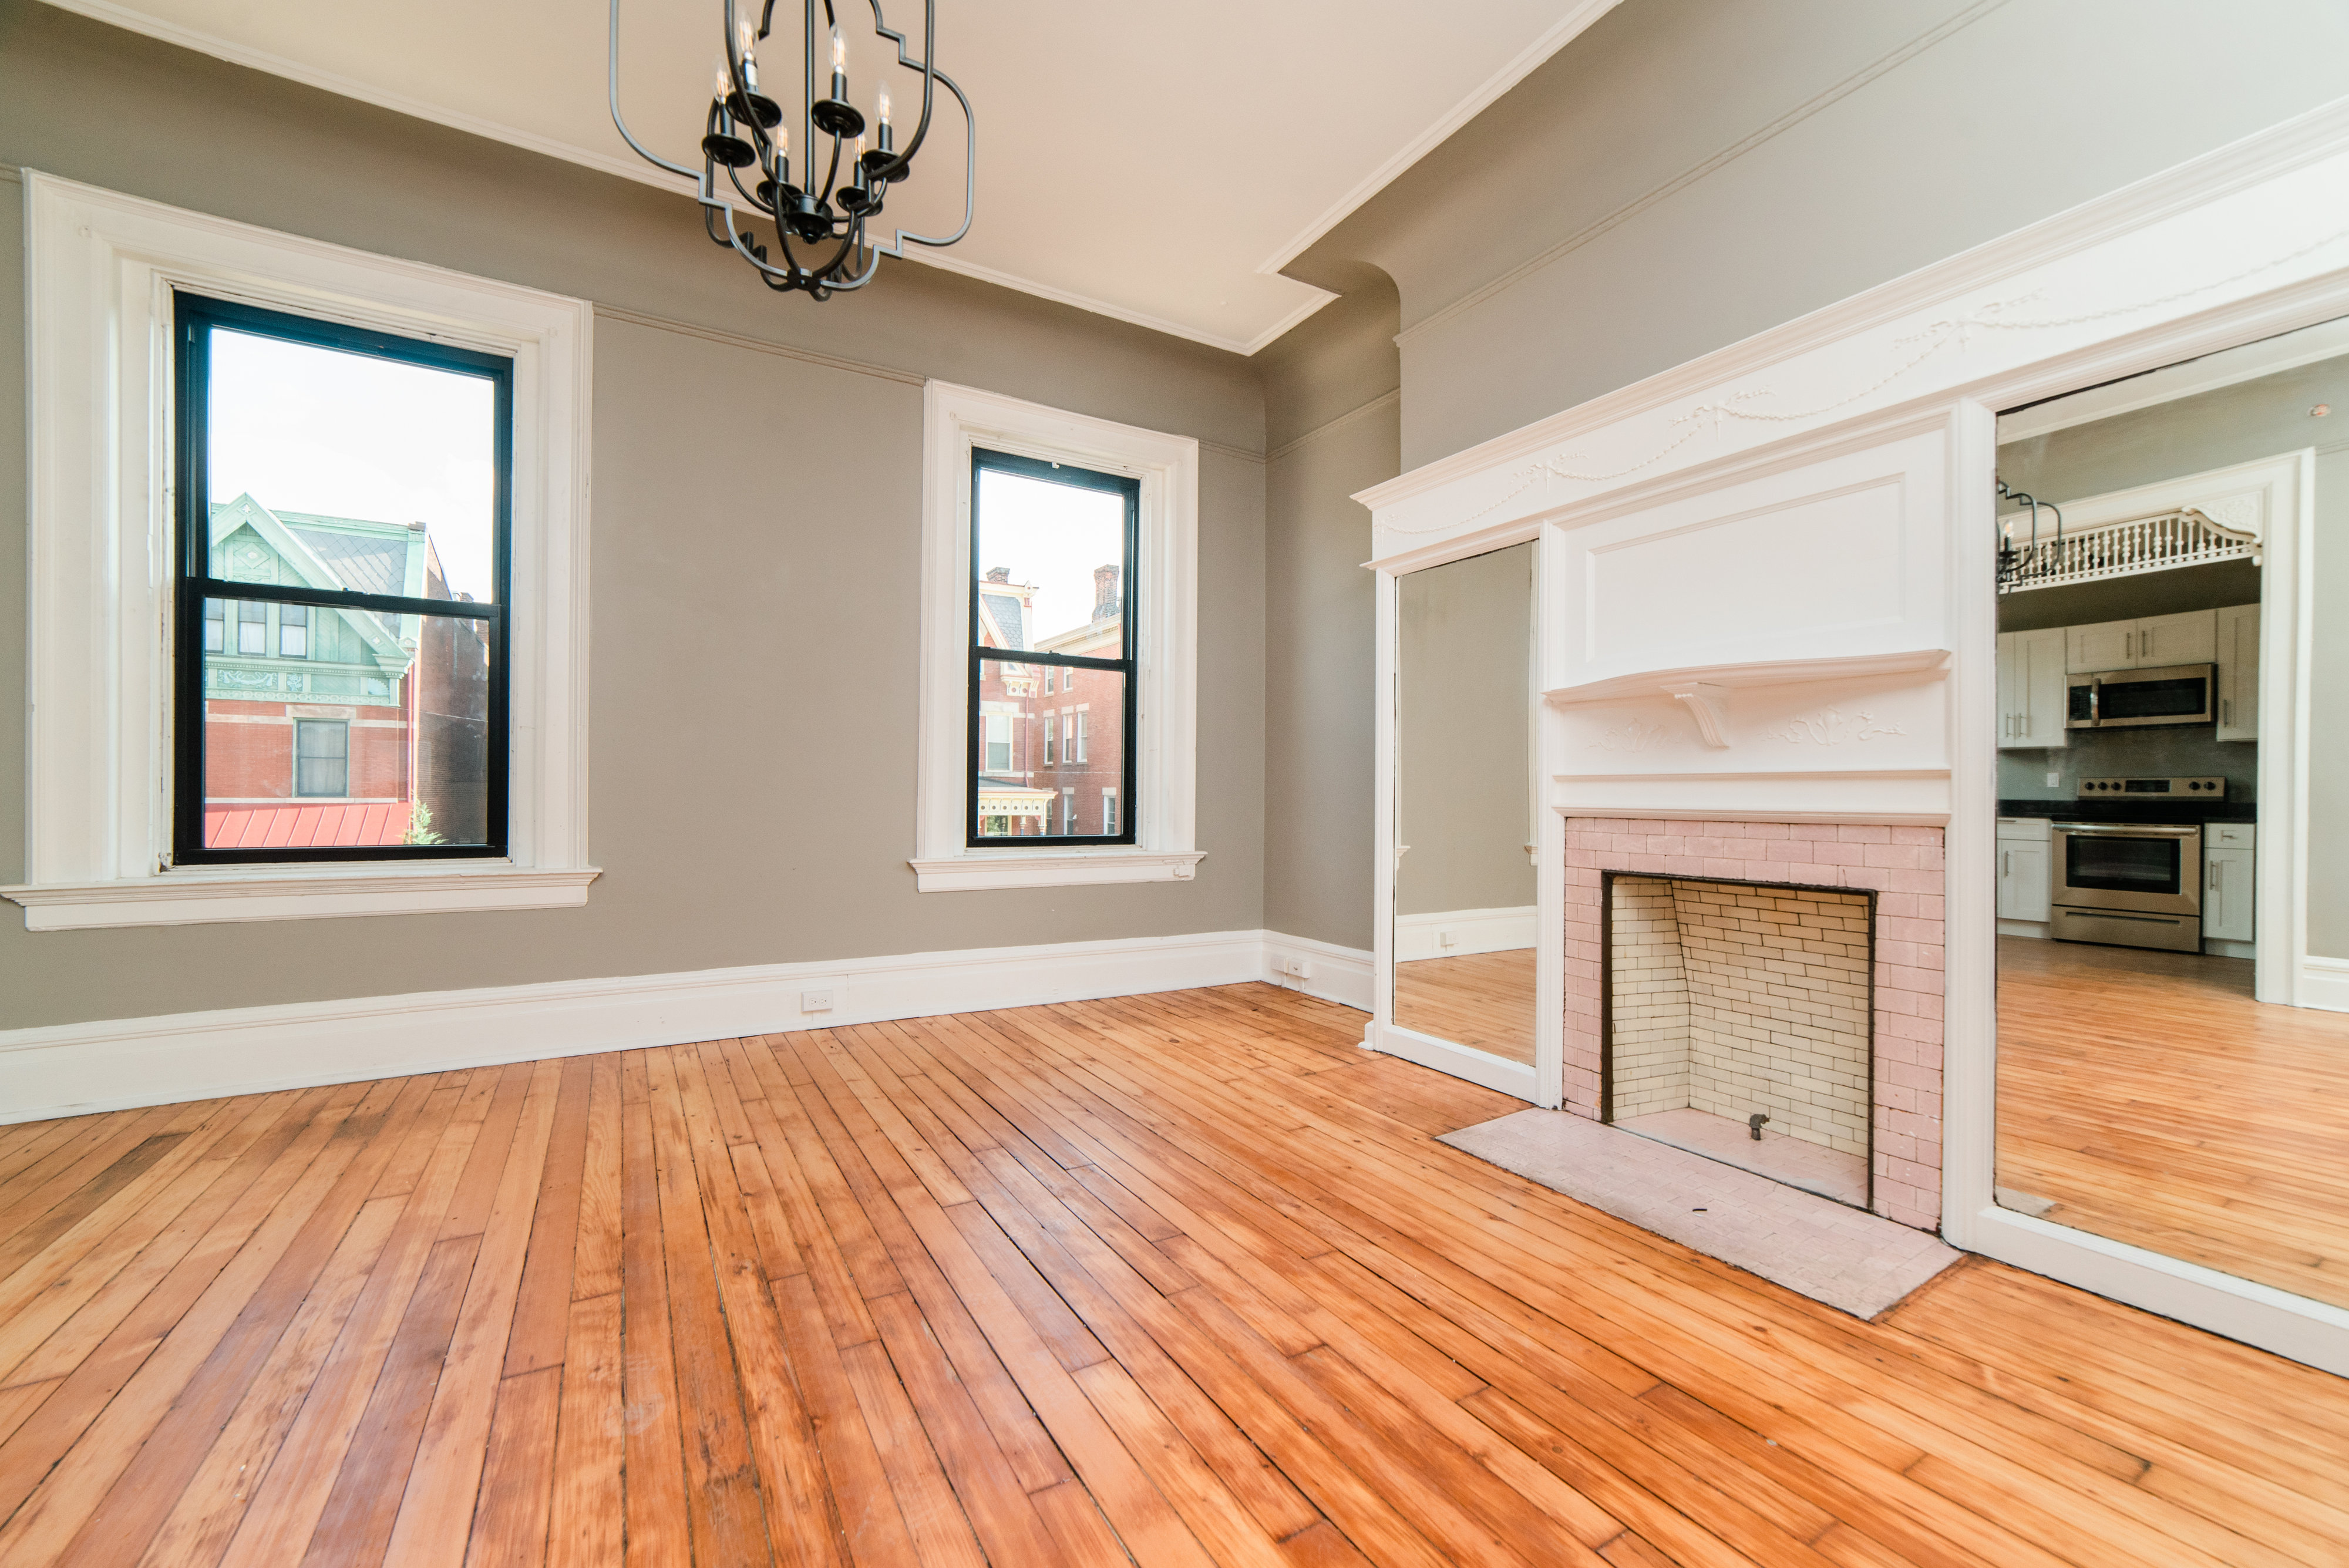 Renovated living area with a fireplace and windows facing the street